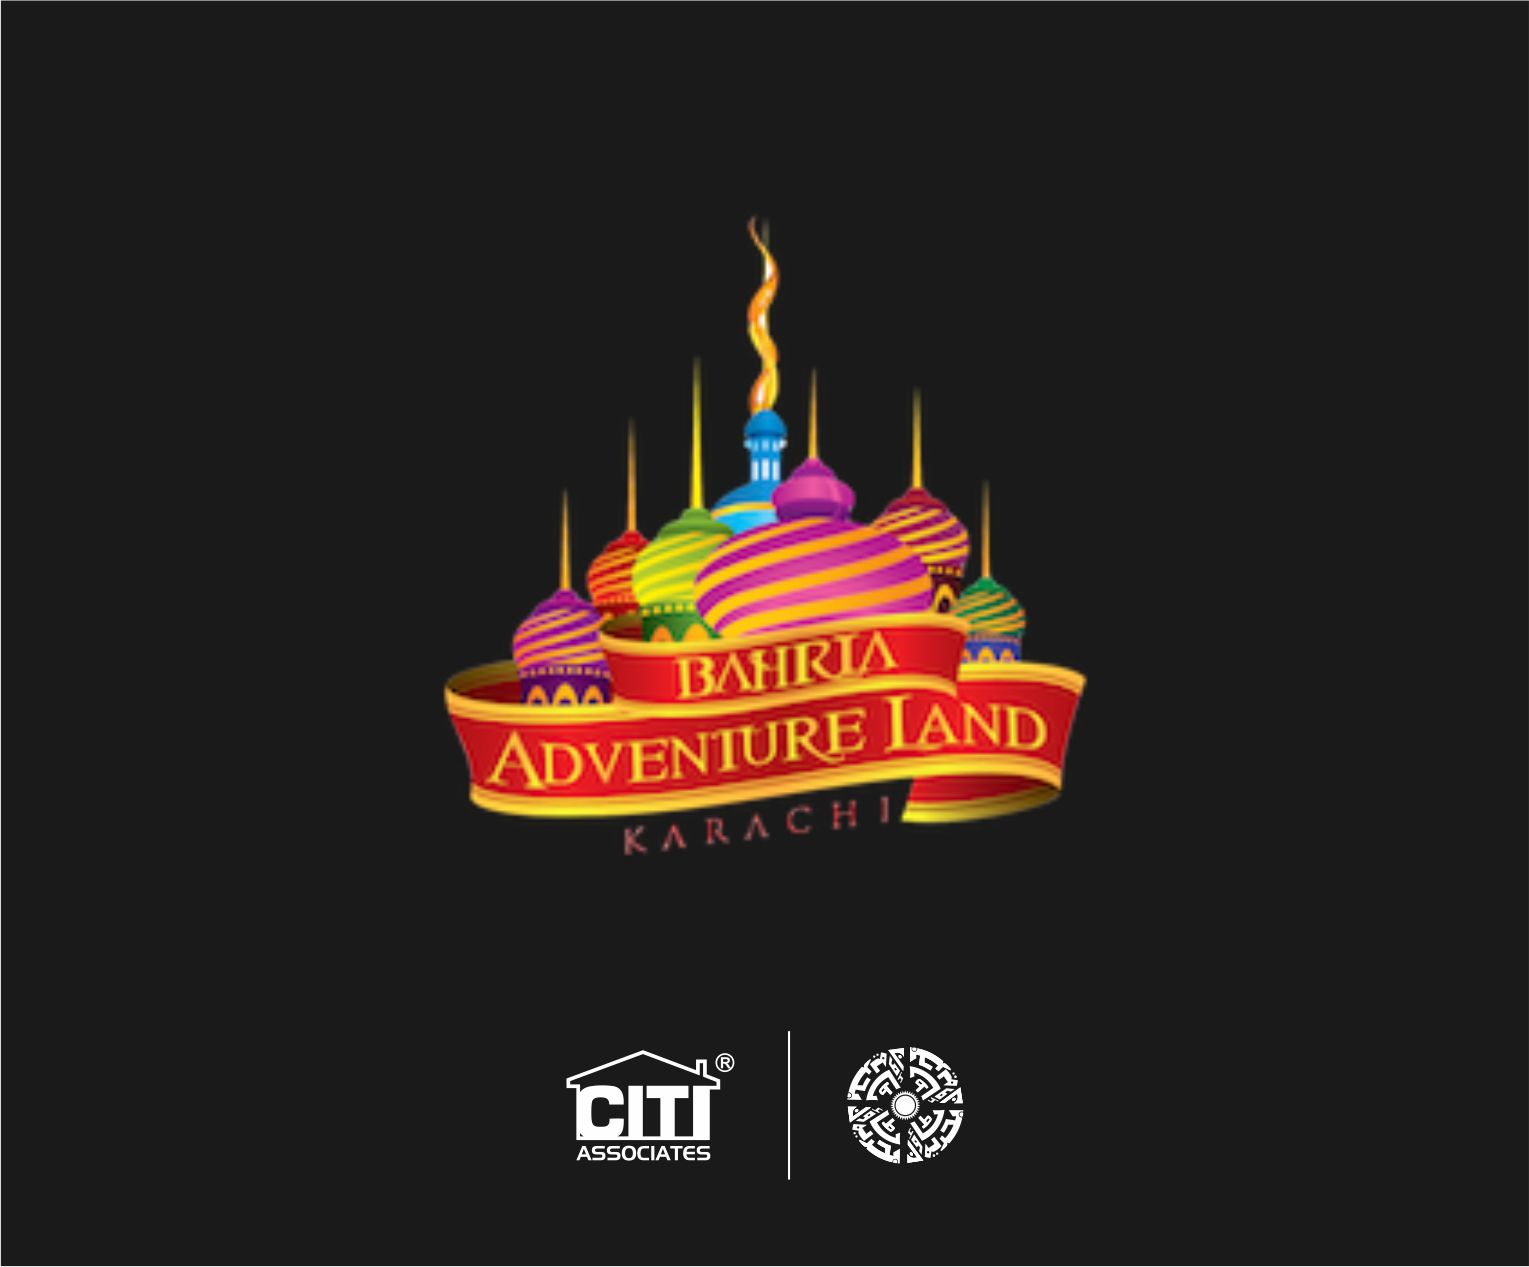 Bahria Adventure Land Karachi | All you Need to Know!